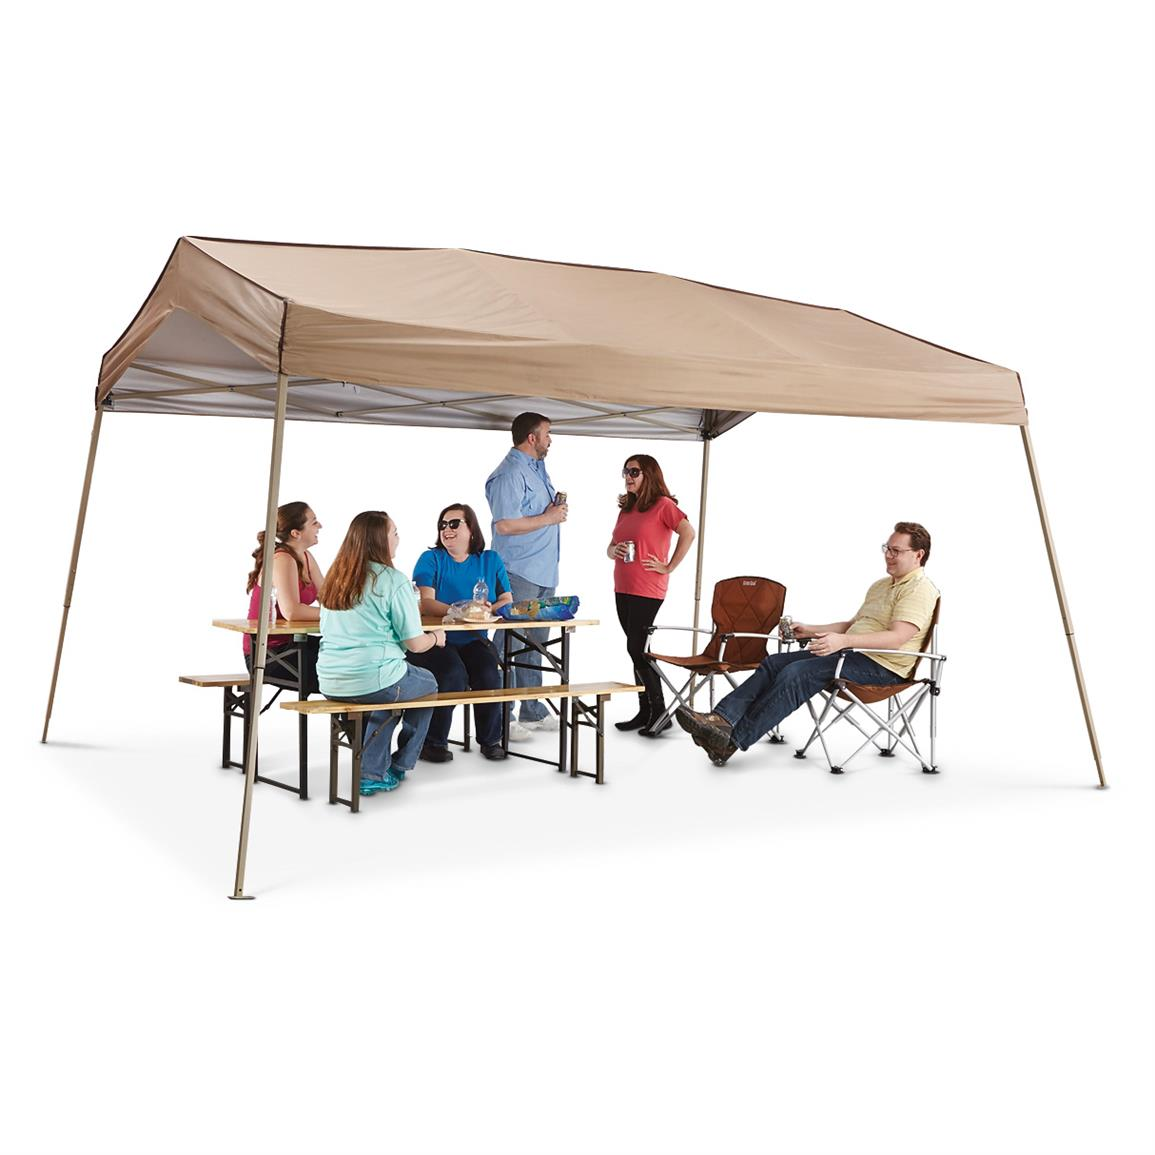 Z-Shade Multi-purpose 12' x 14' Portable Shelter